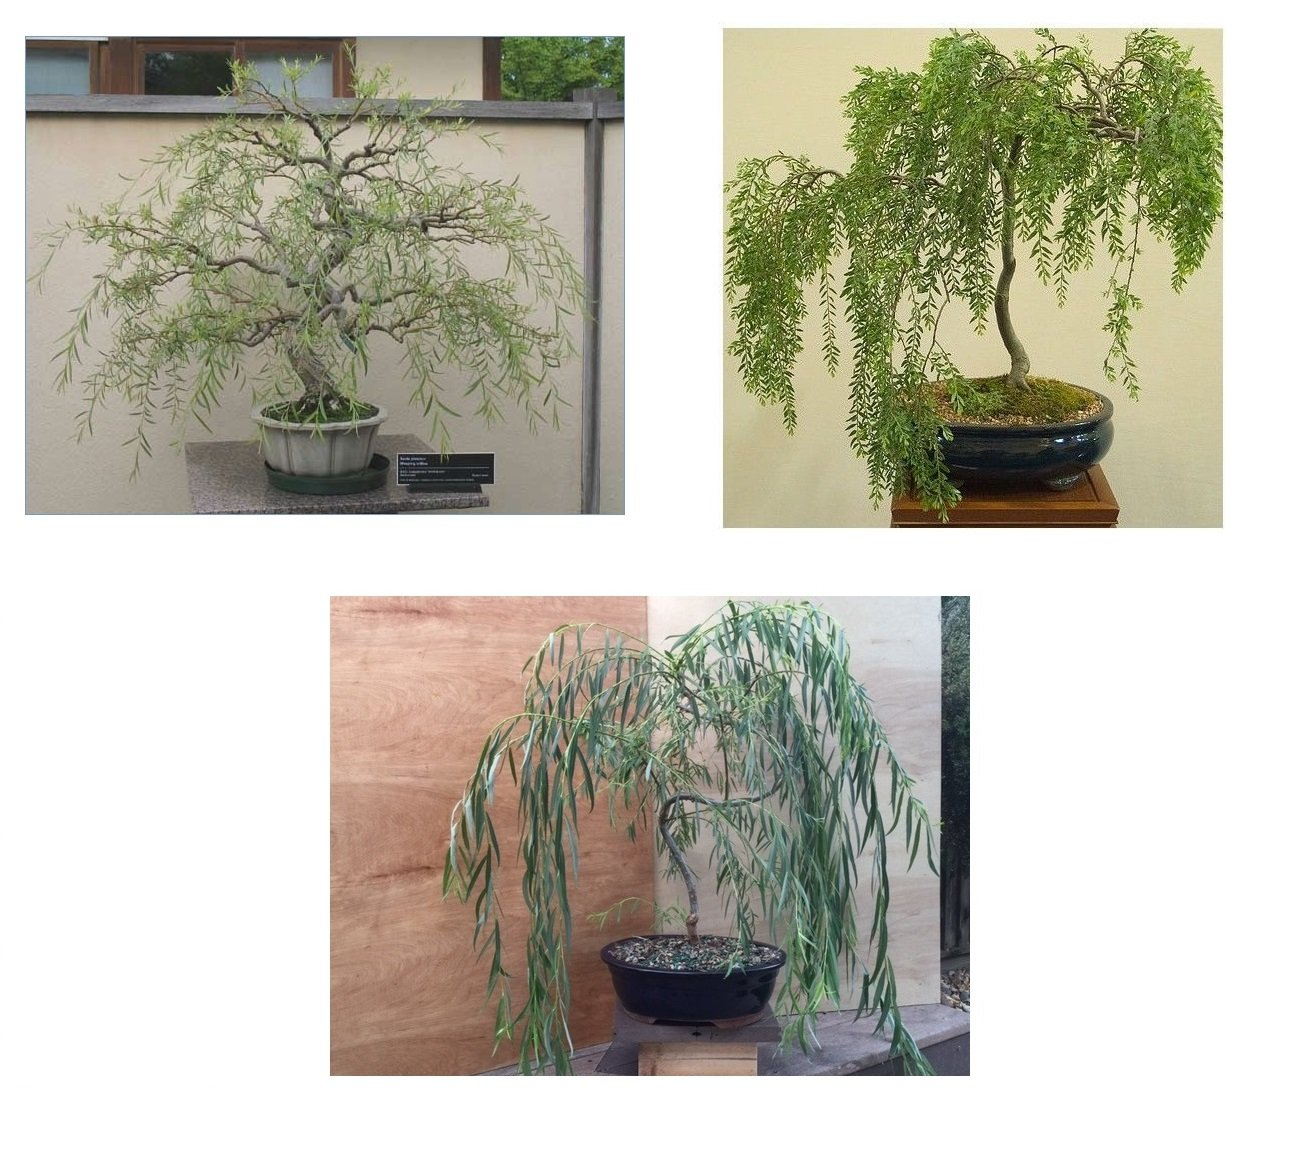 Bonsai Willow Tree Bundle - 3 Large Trunk Bonsai Tree Cuts - Get one Each Weeping, Australian, Dragon - Ready to Plant - Indoor/Outdoor Bonsai Tree's by CZ Grain